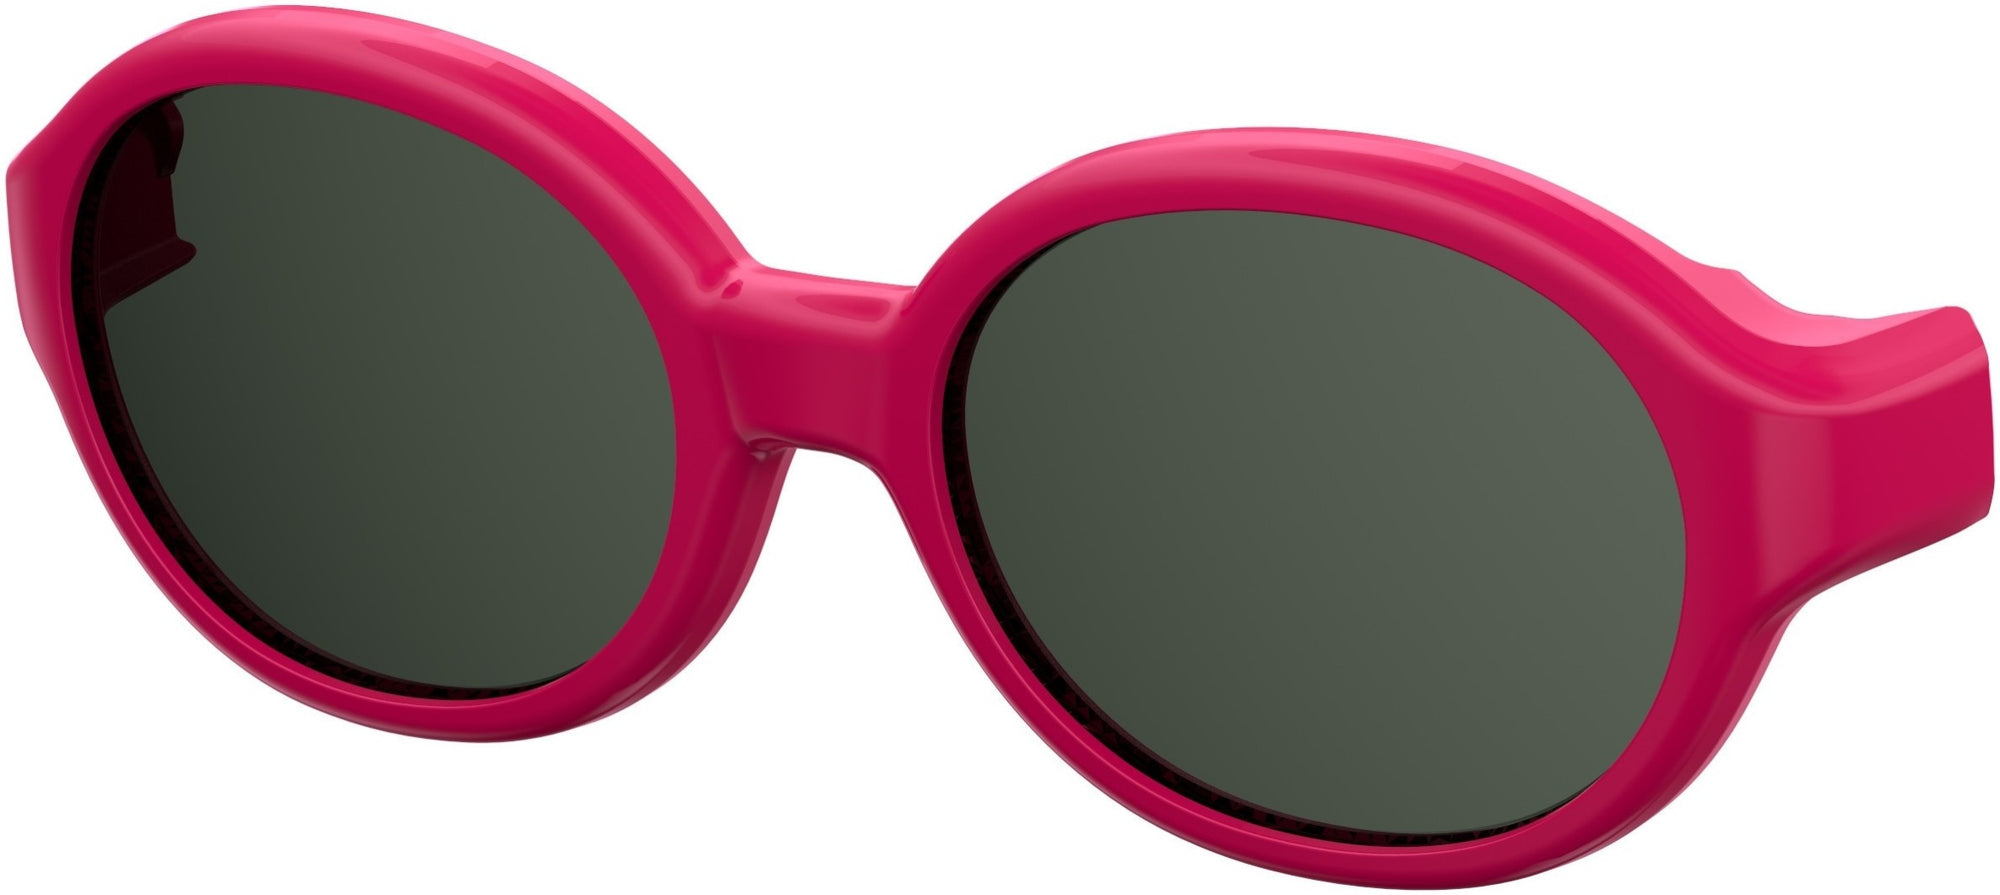 Safilo Safilo Kids Safilo 0004N Clip Only Oval Modified Sunglasses 0MU1-0MU1  Fuchsia (M9 Gray Pz)